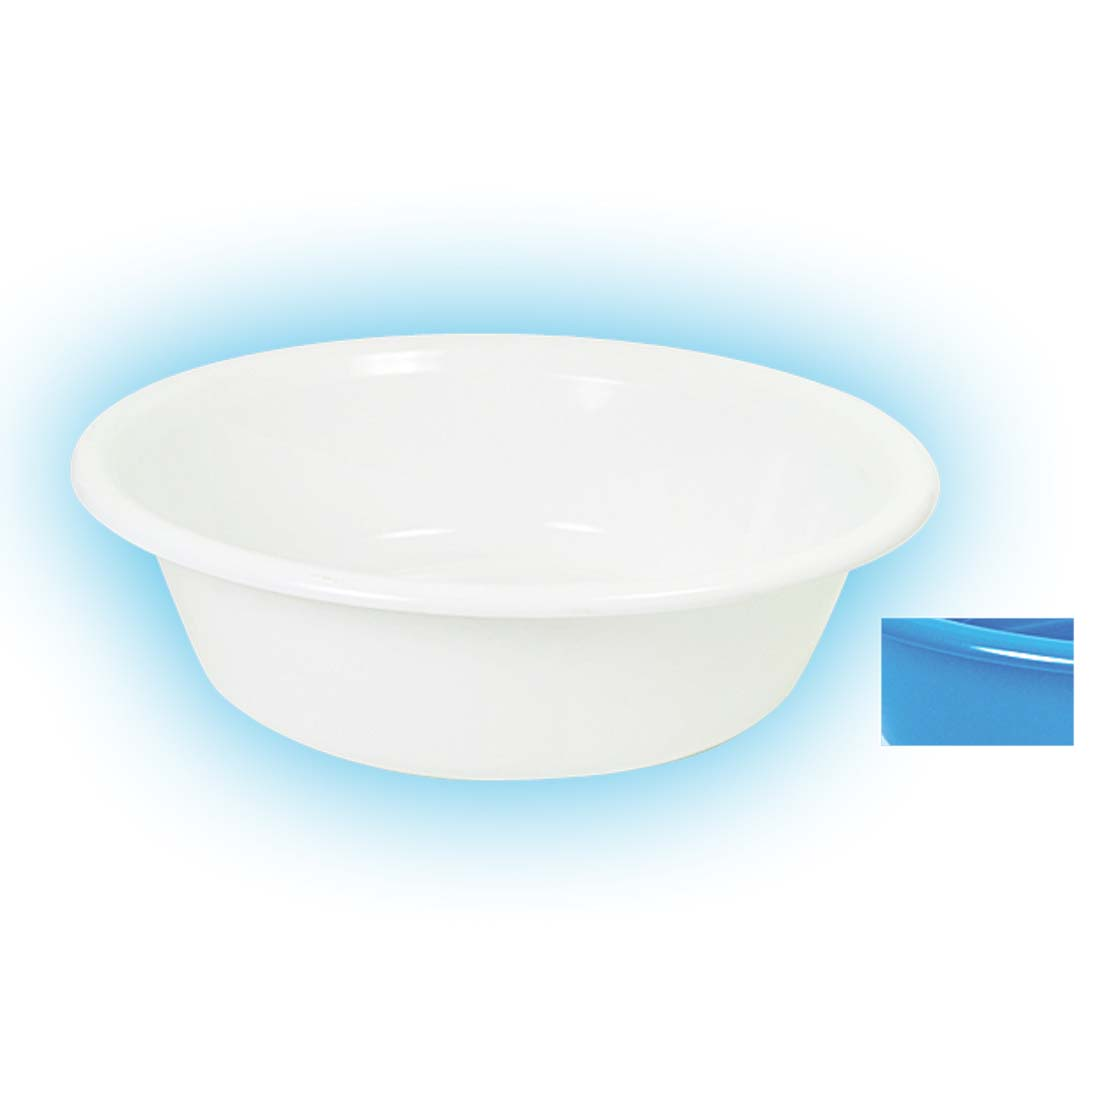 View BASIN ROUND 18 INCH WHITE AND BLUE ASSORTED